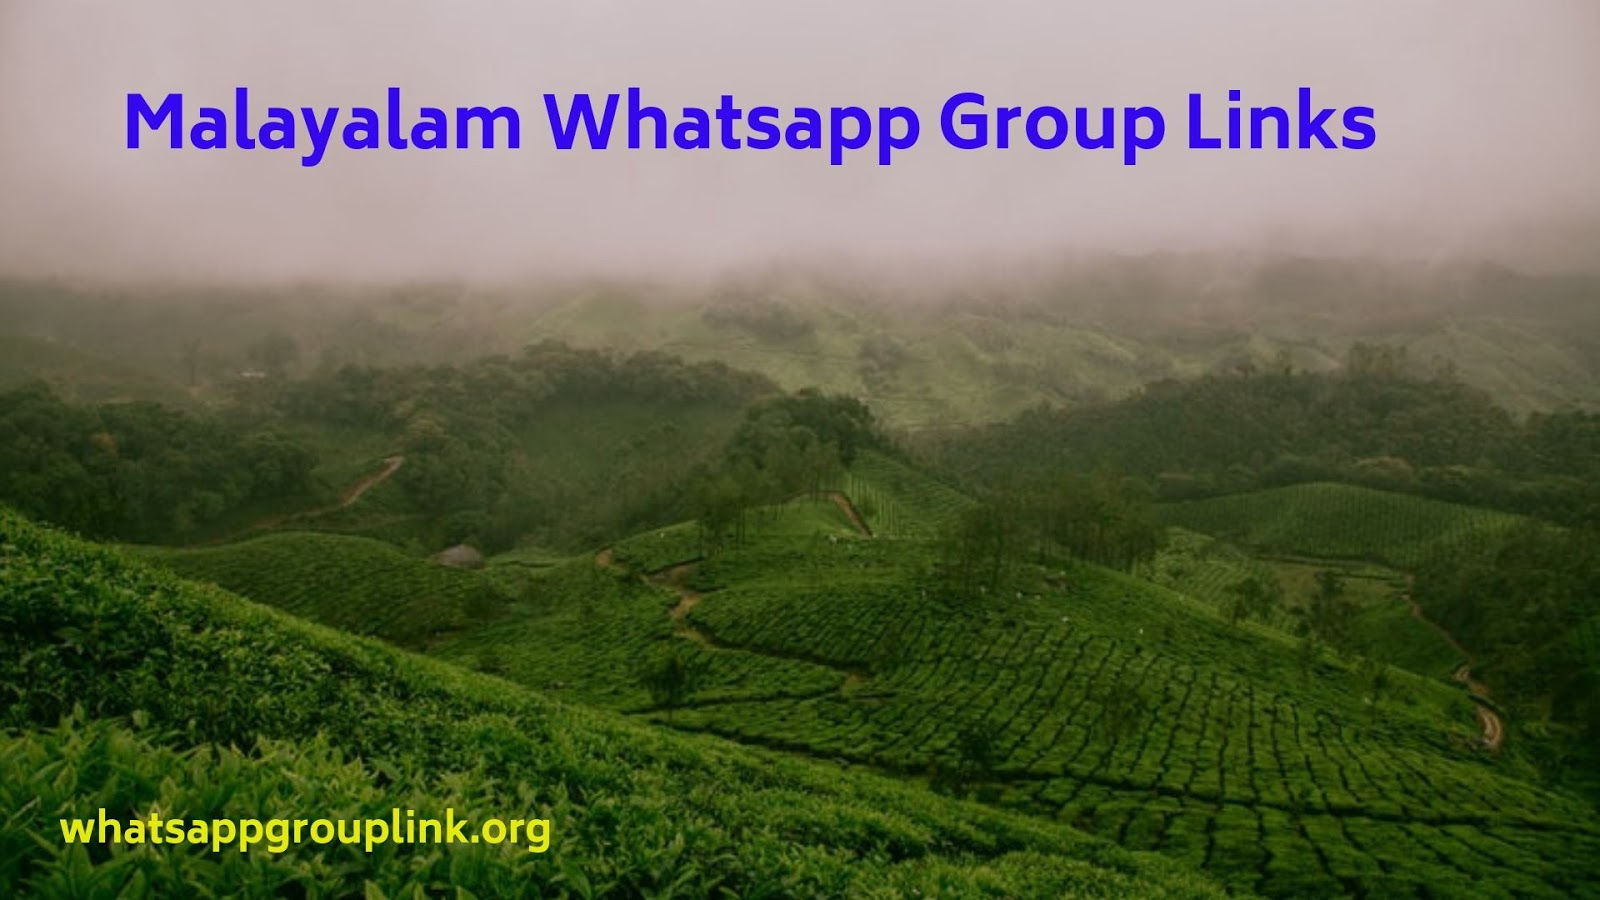 Whatsapp Group Link: Malayalam Whatsapp Group Links